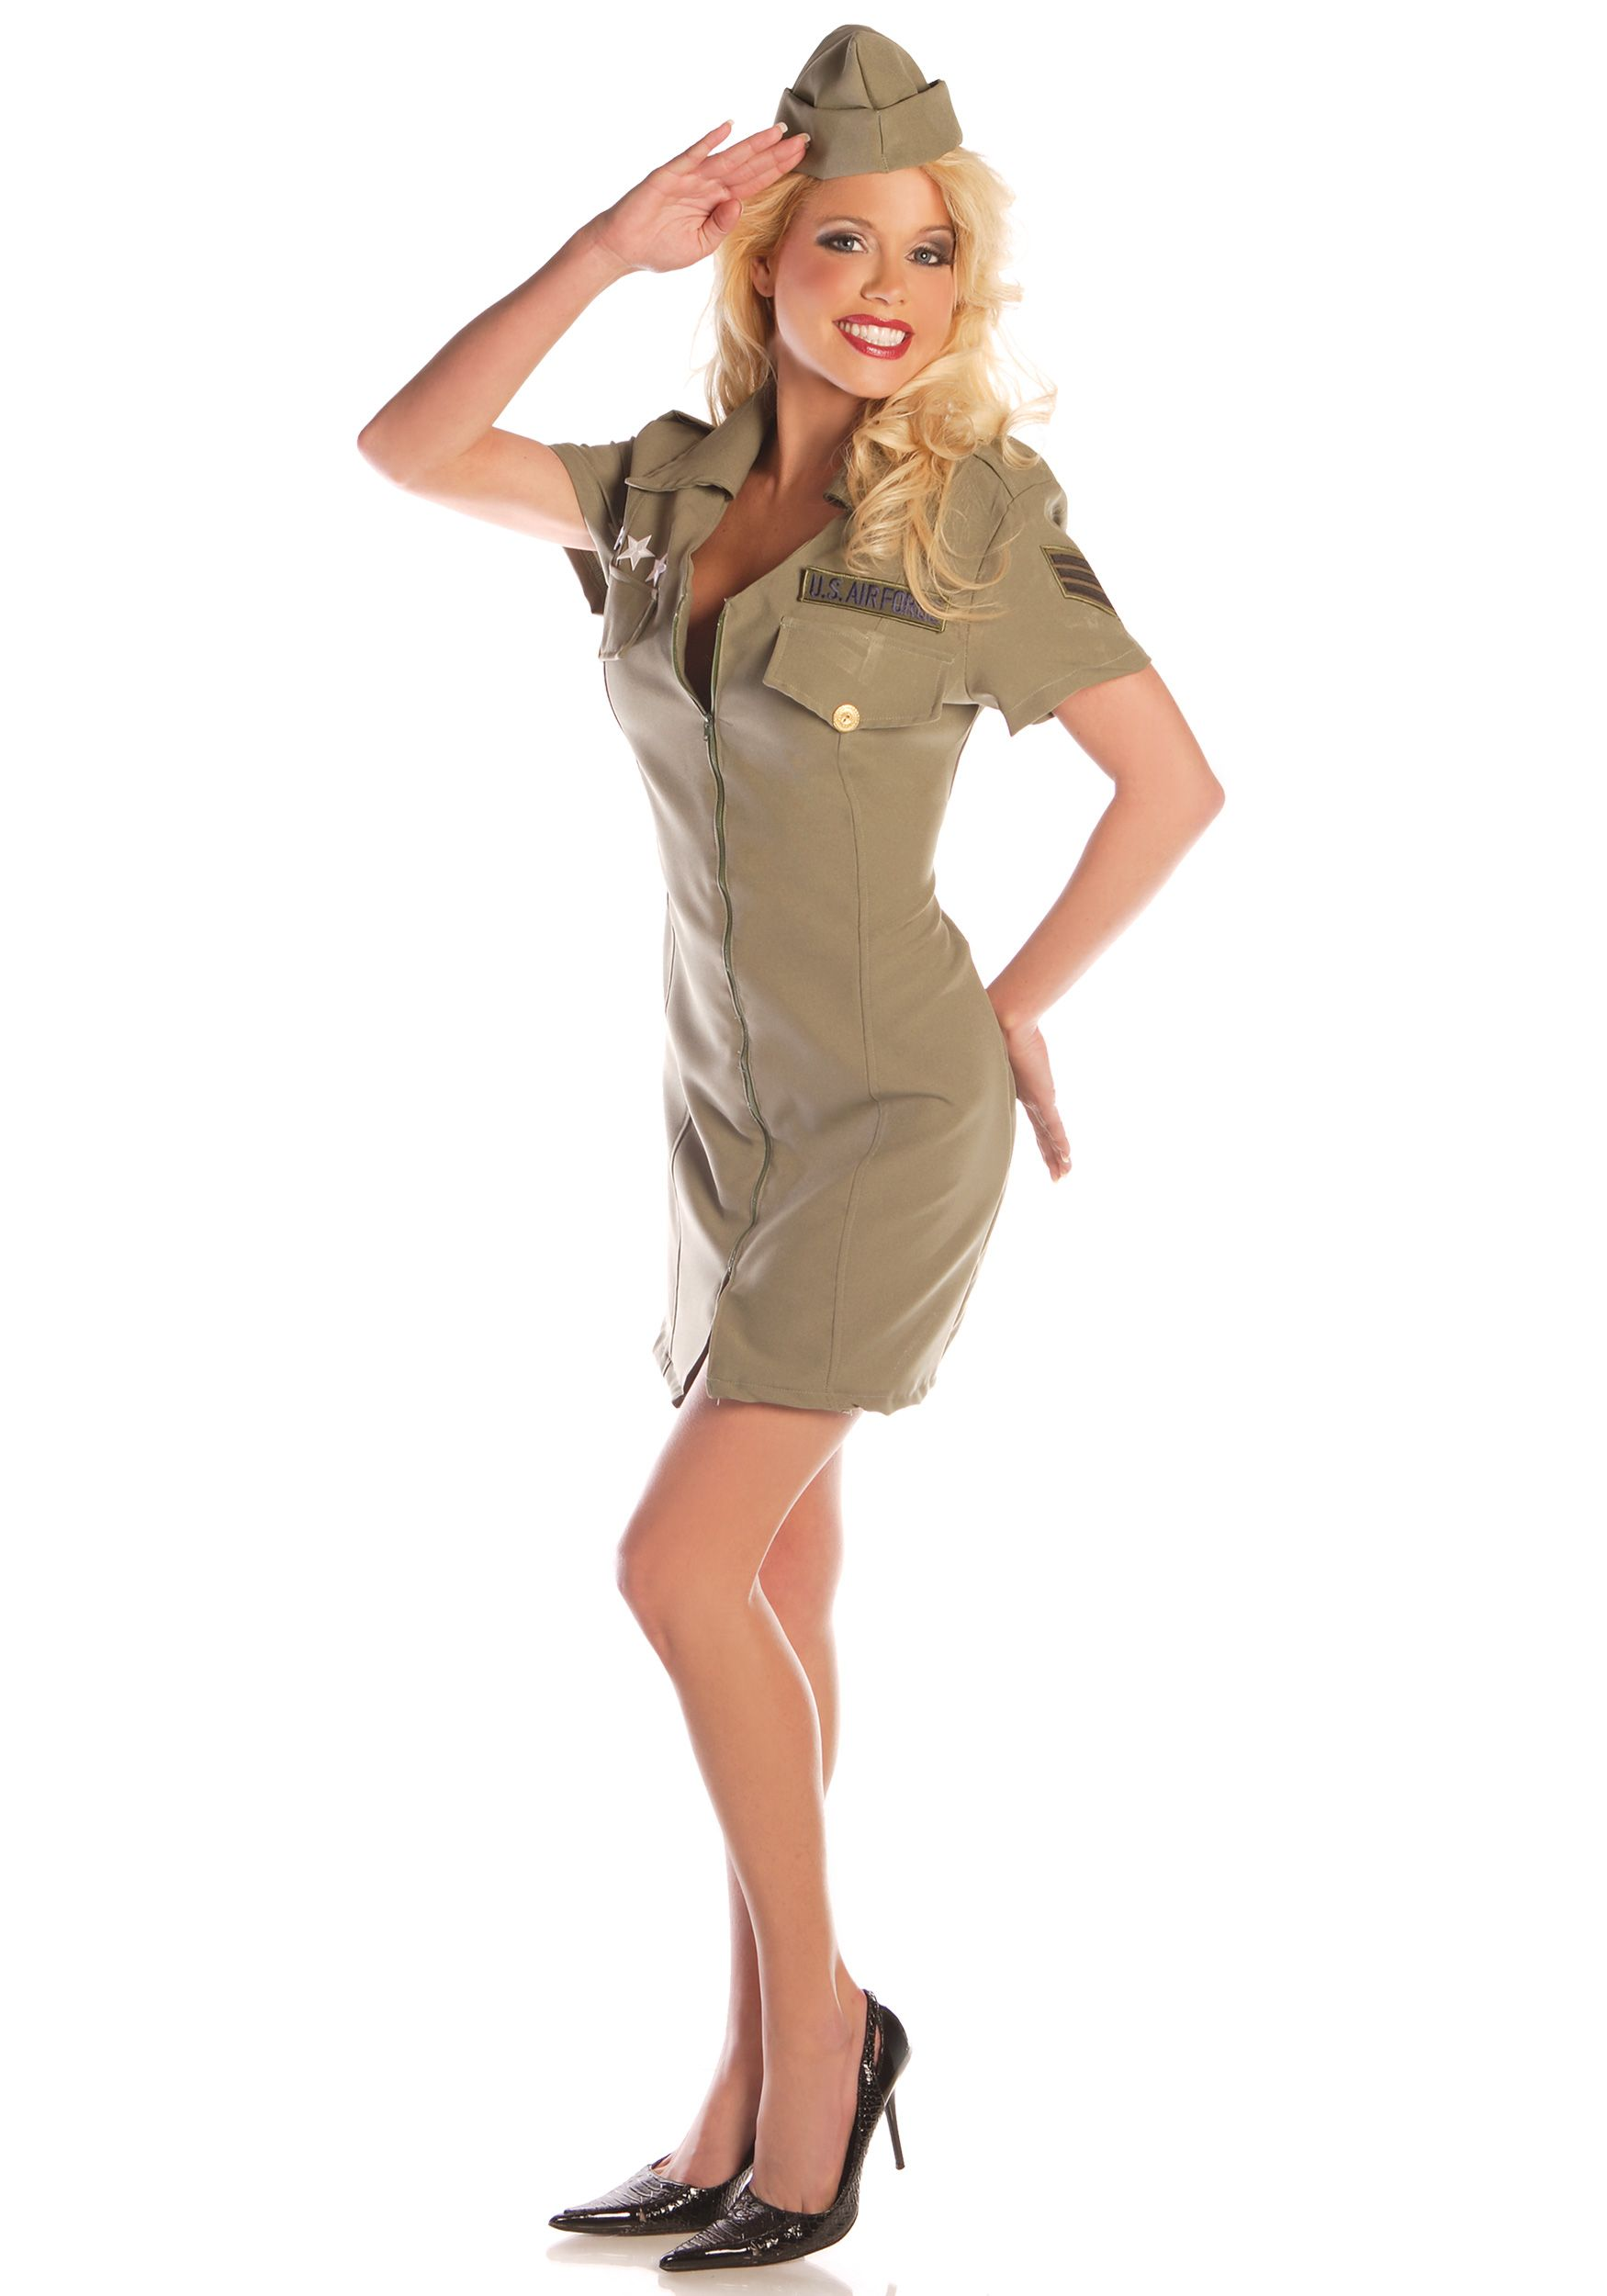 Amazon Had This For 18 Sexy Fly Girl Military Costume Raw Holiday